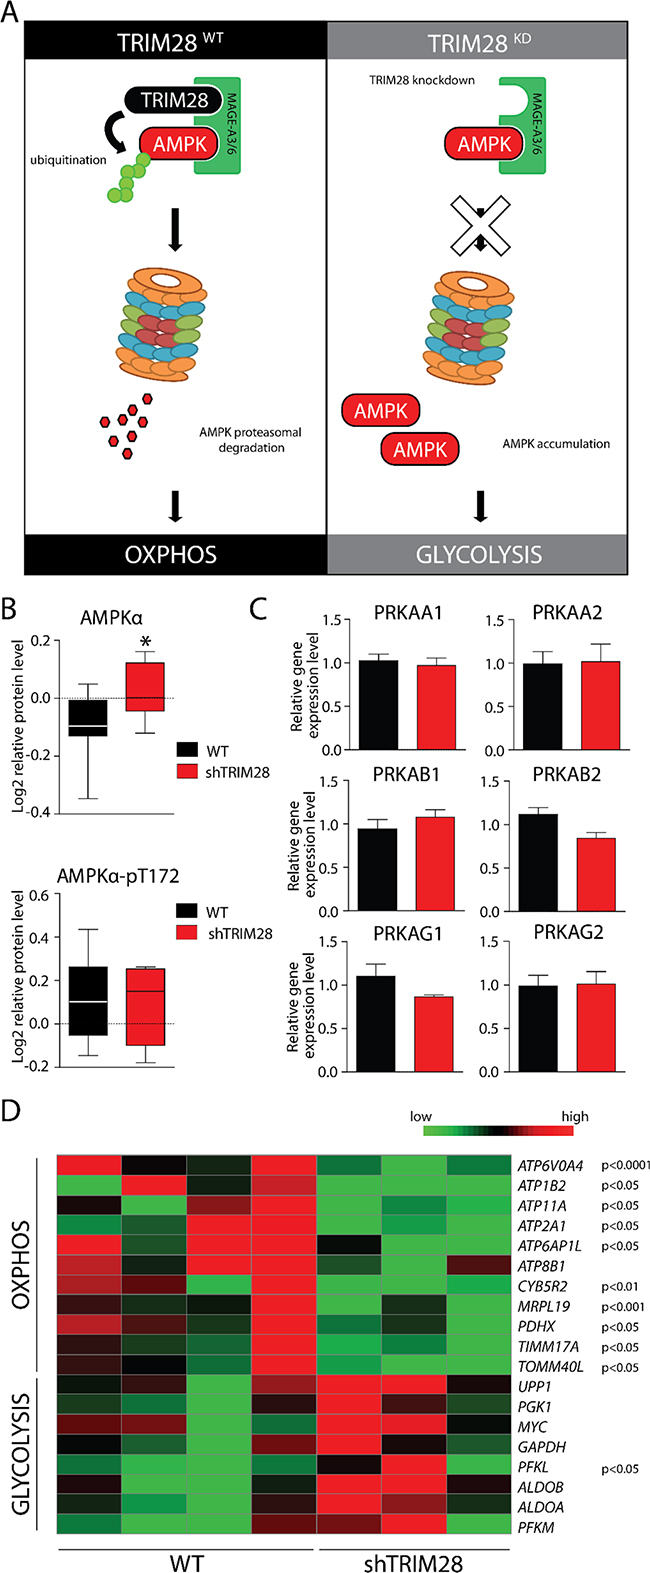 AMPK accumulation upon TRIM28 knockdown mediates metabolic switch from OXPHOS to glycolysis in cancer cells.